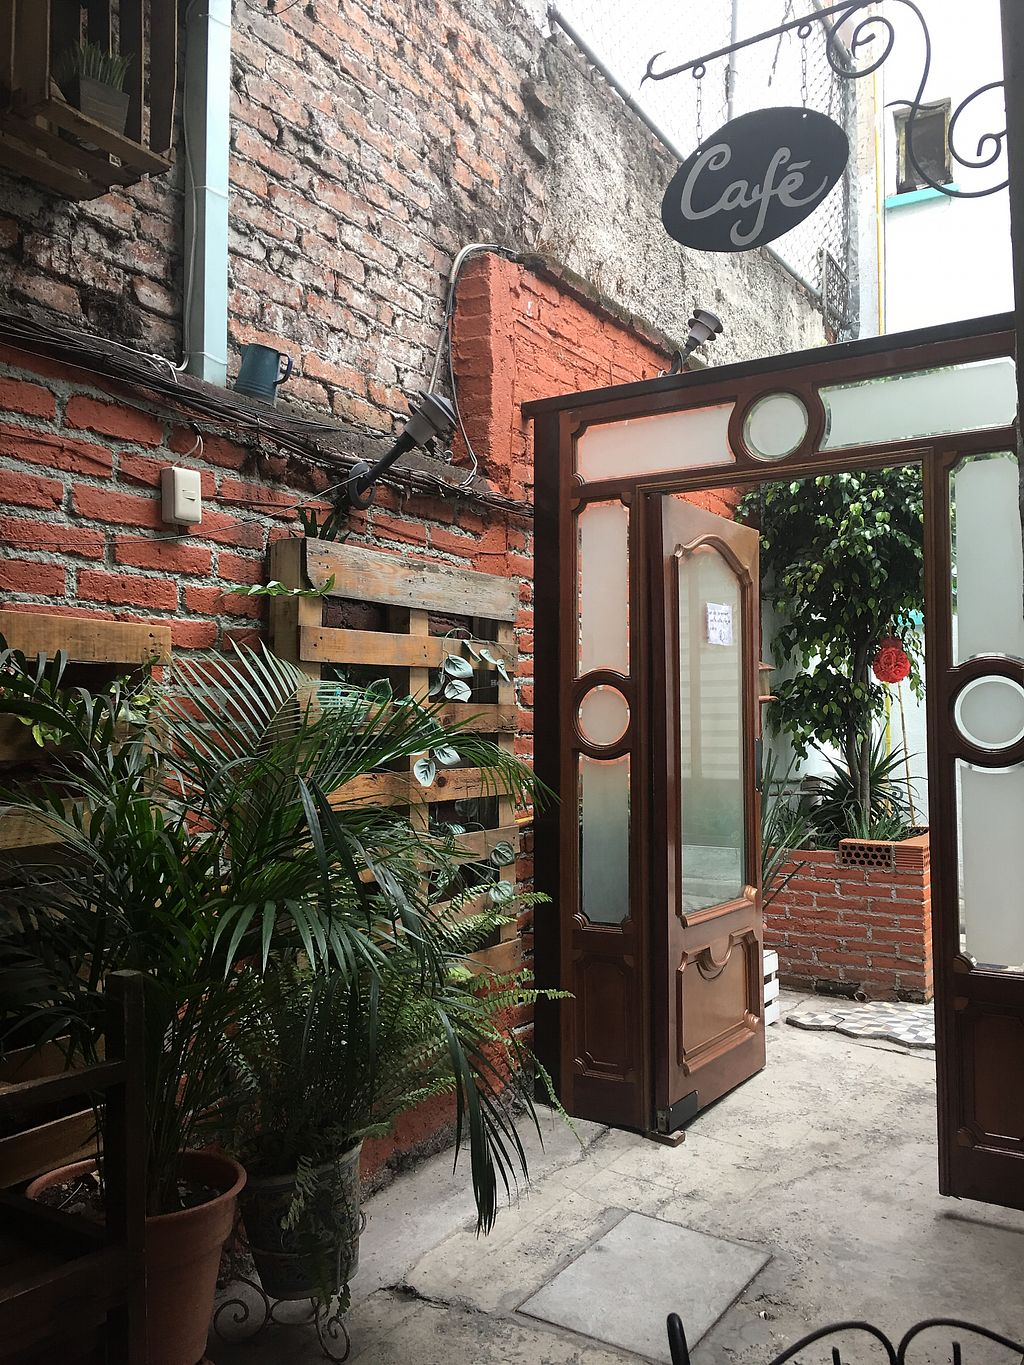 """Photo of Luna Vegana  by <a href=""""/members/profile/kittybabe"""">kittybabe</a> <br/>Inside. Loved the plants, brick wall, overall super cute interior/atmosphere  <br/> May 5, 2018  - <a href='/contact/abuse/image/109769/395710'>Report</a>"""